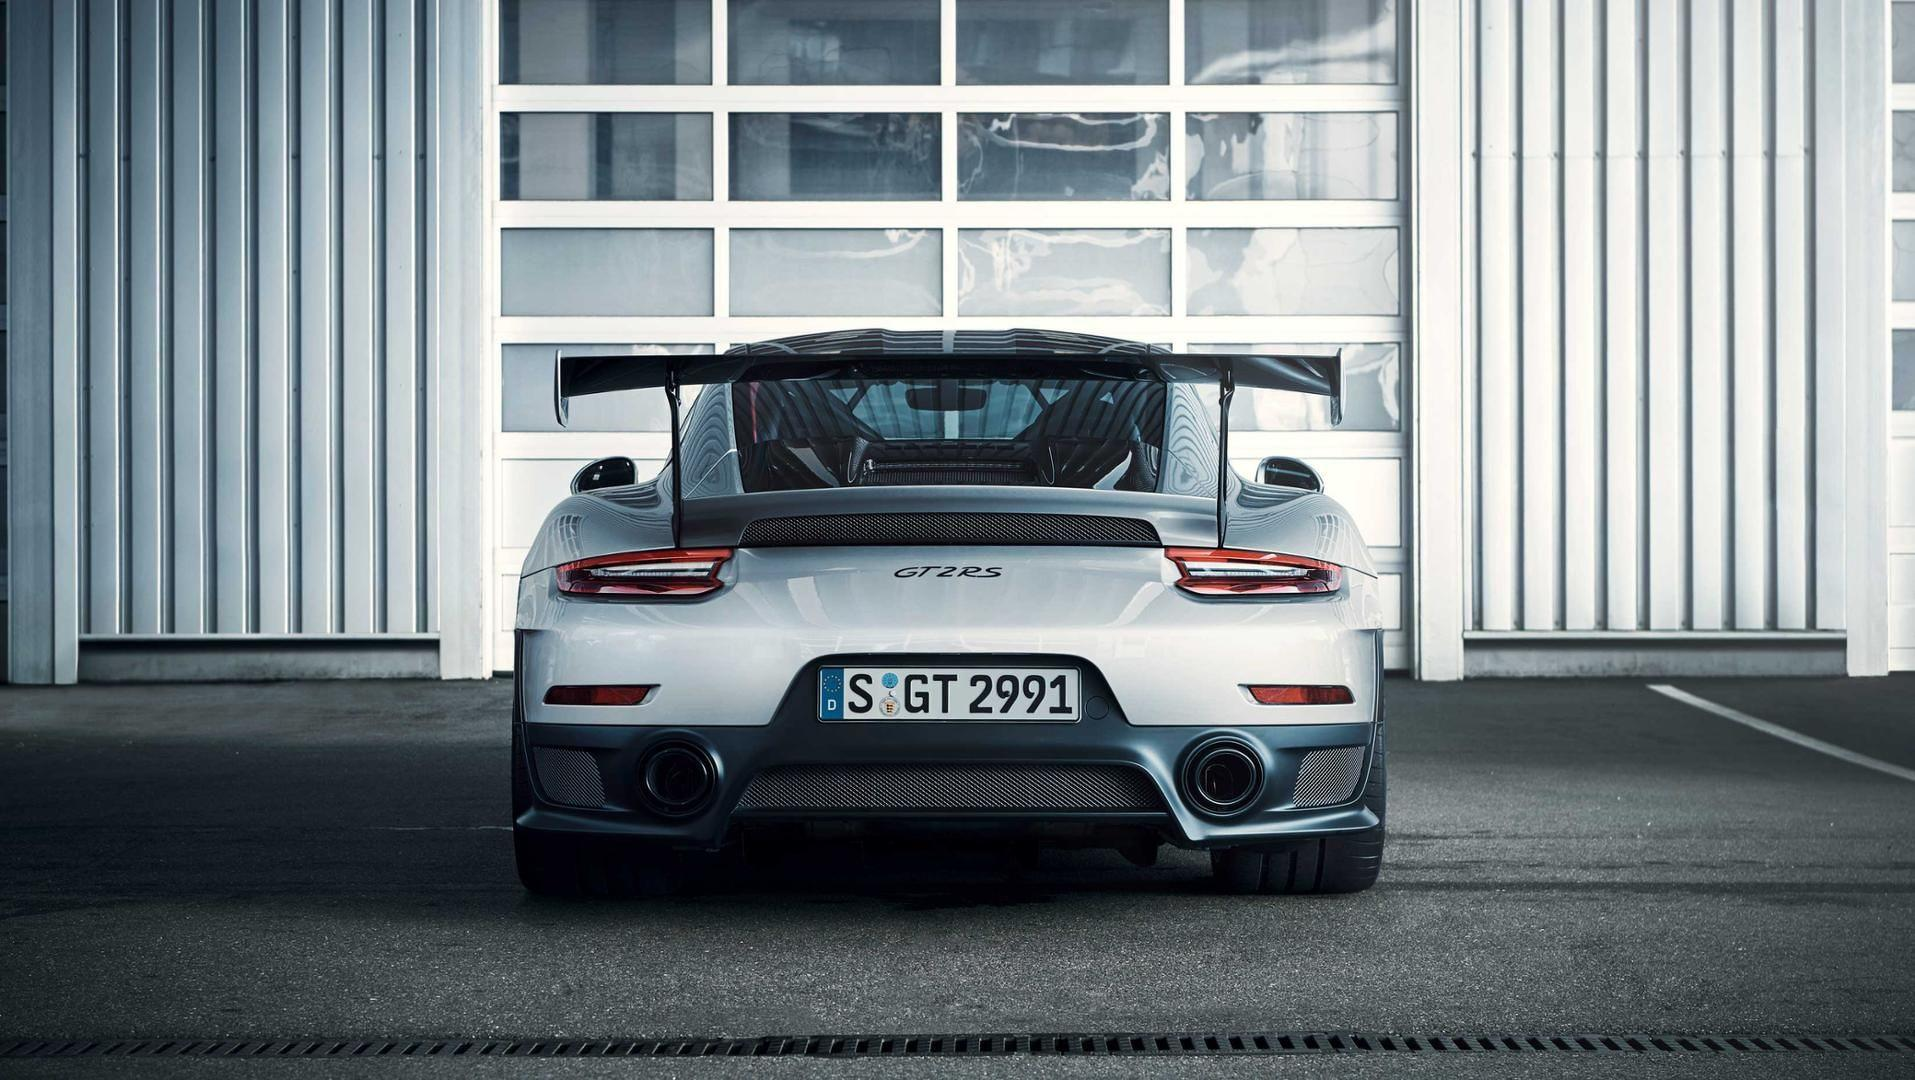 Un Porsche 911 Gt2 Rs Sufre Un Accidente En Gales